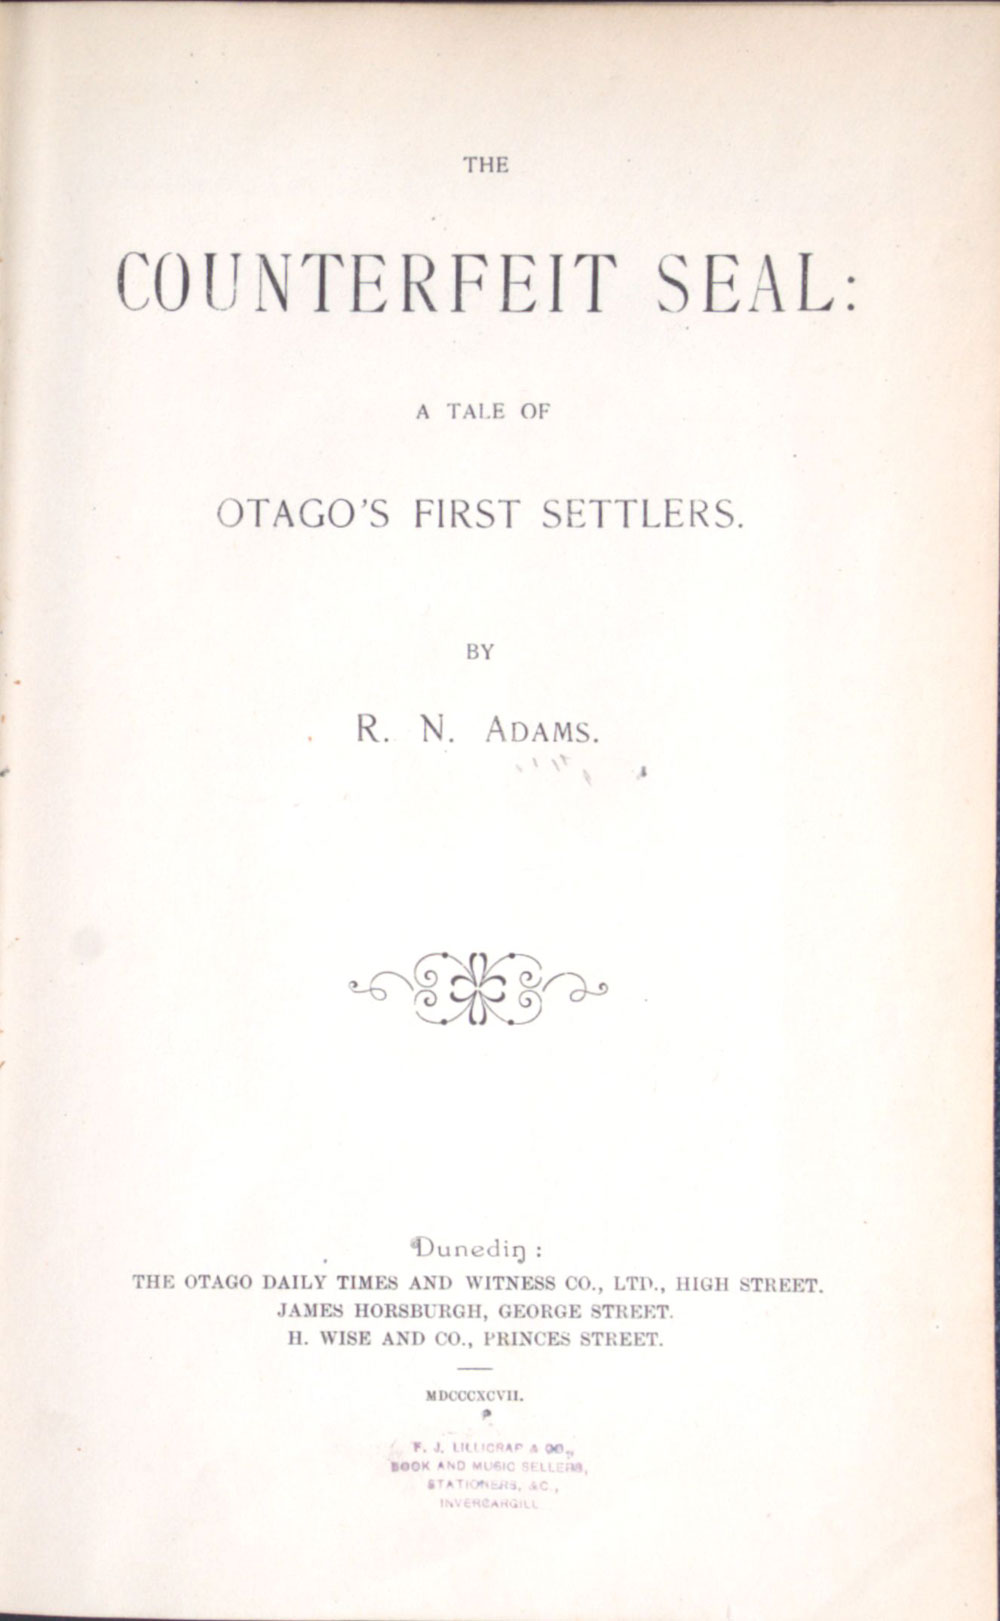 R.N. Adams. <em>The counterfeit seal: a tale of Otago's first settlers</em>. Dunedin: Otago Daily Times & Witness Co., 1897.